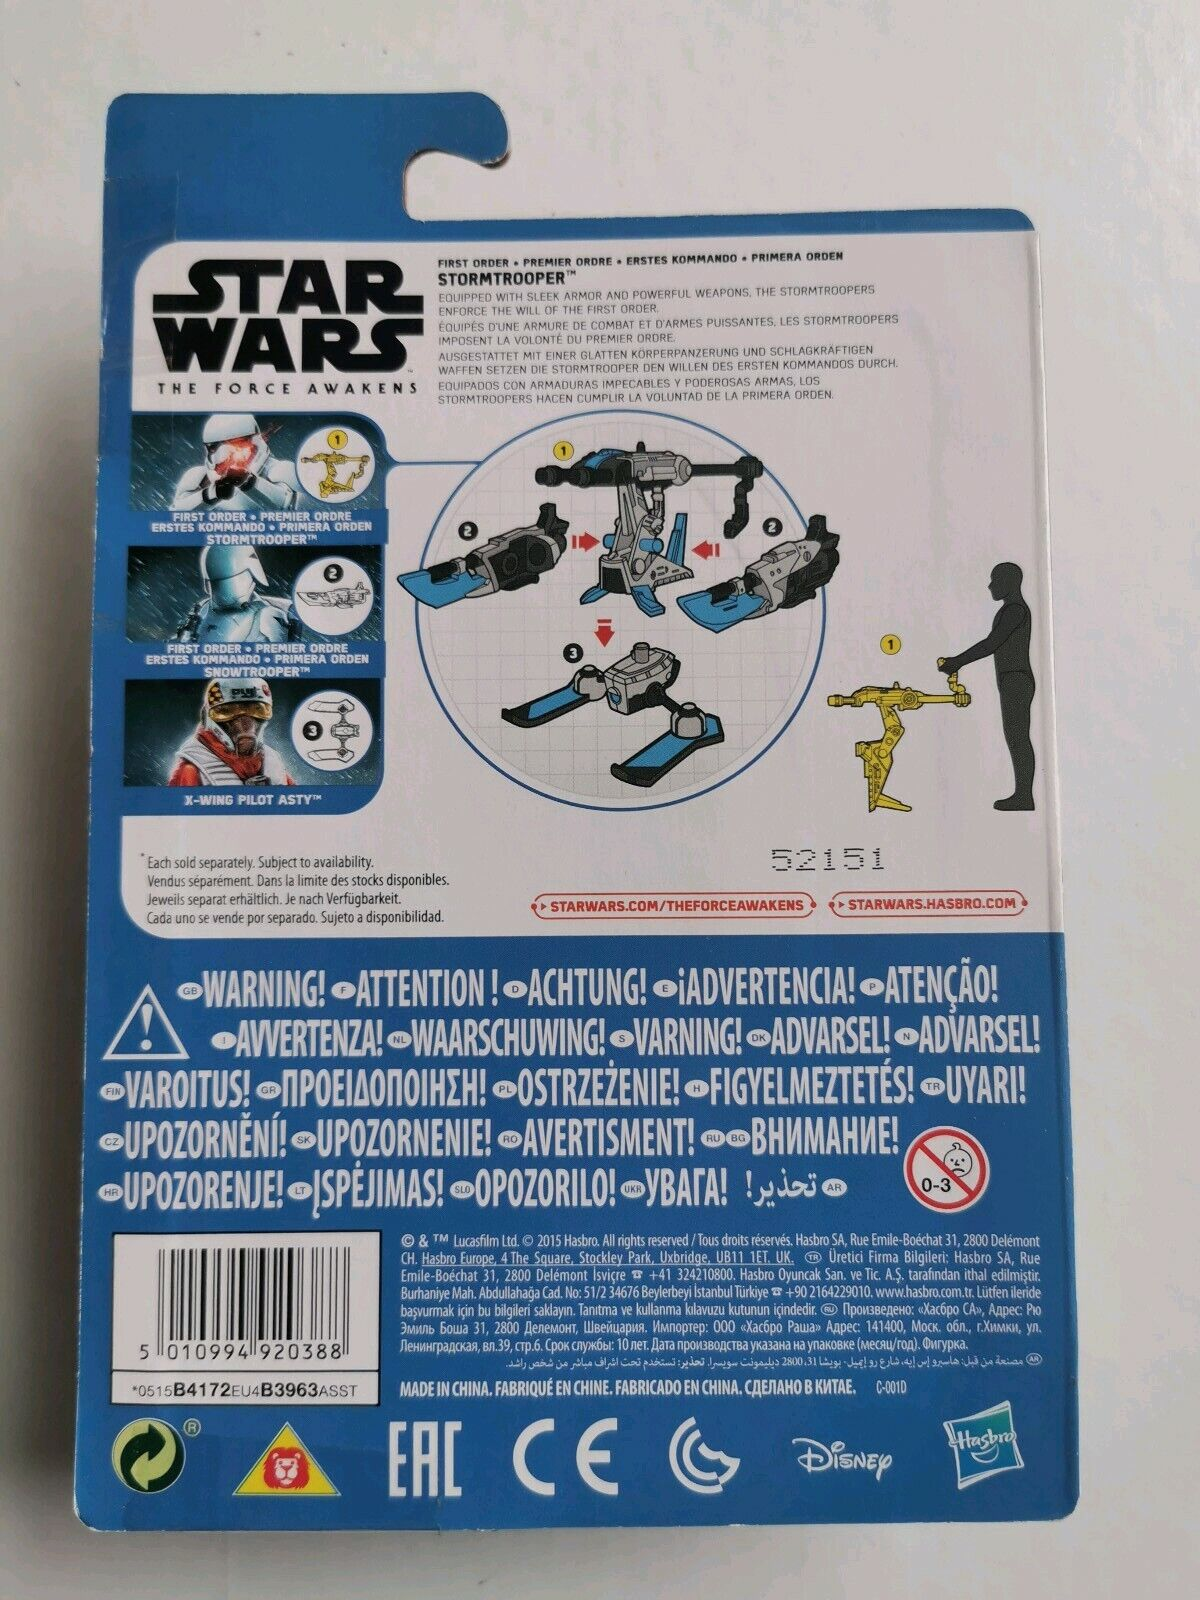 StarWars collection : STAR WARS FIG DE 10 CM STORMTROOPER SERIE THE FORCE AWAKENS SOUS BLISTER NEUF